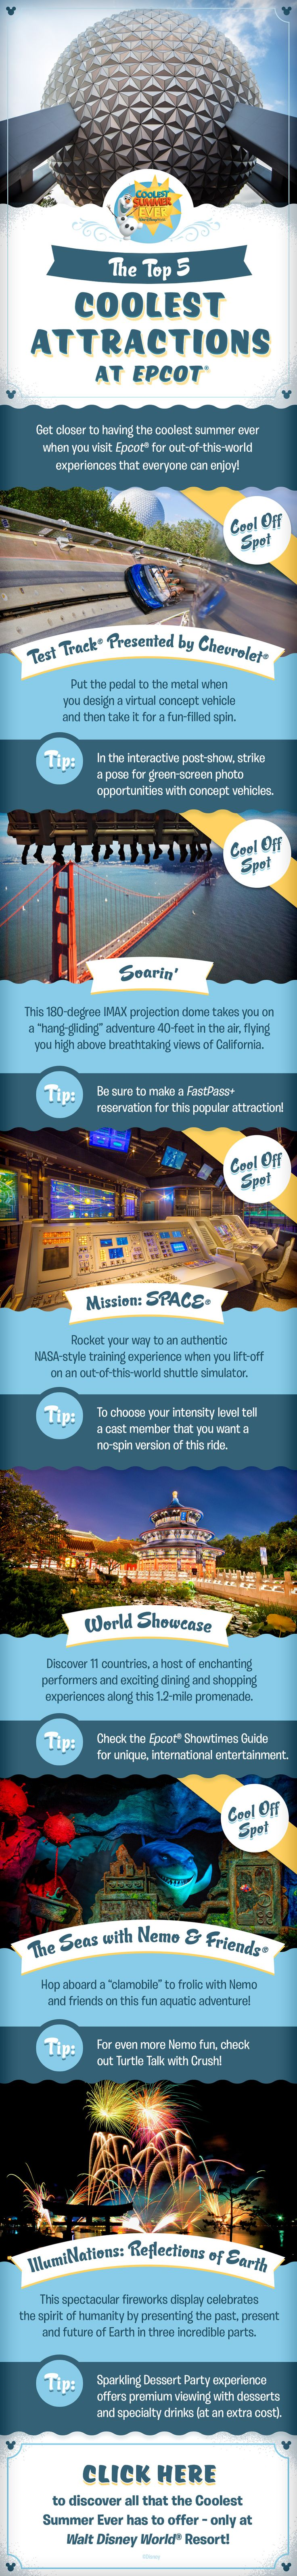 Check out the Top 5 Coolest Attractions at Epcot and get ready to have the Coolest Summer Ever as you plan your family vacation at Walt Disney World! Whether you are craving thrills on Test Track and Mission: SPACE, looking to cool off on Soarin' or The Seas with Nemo & Friends, or wanting to discover the world at World Showcase, there's something for everyone in your family to enjoy!